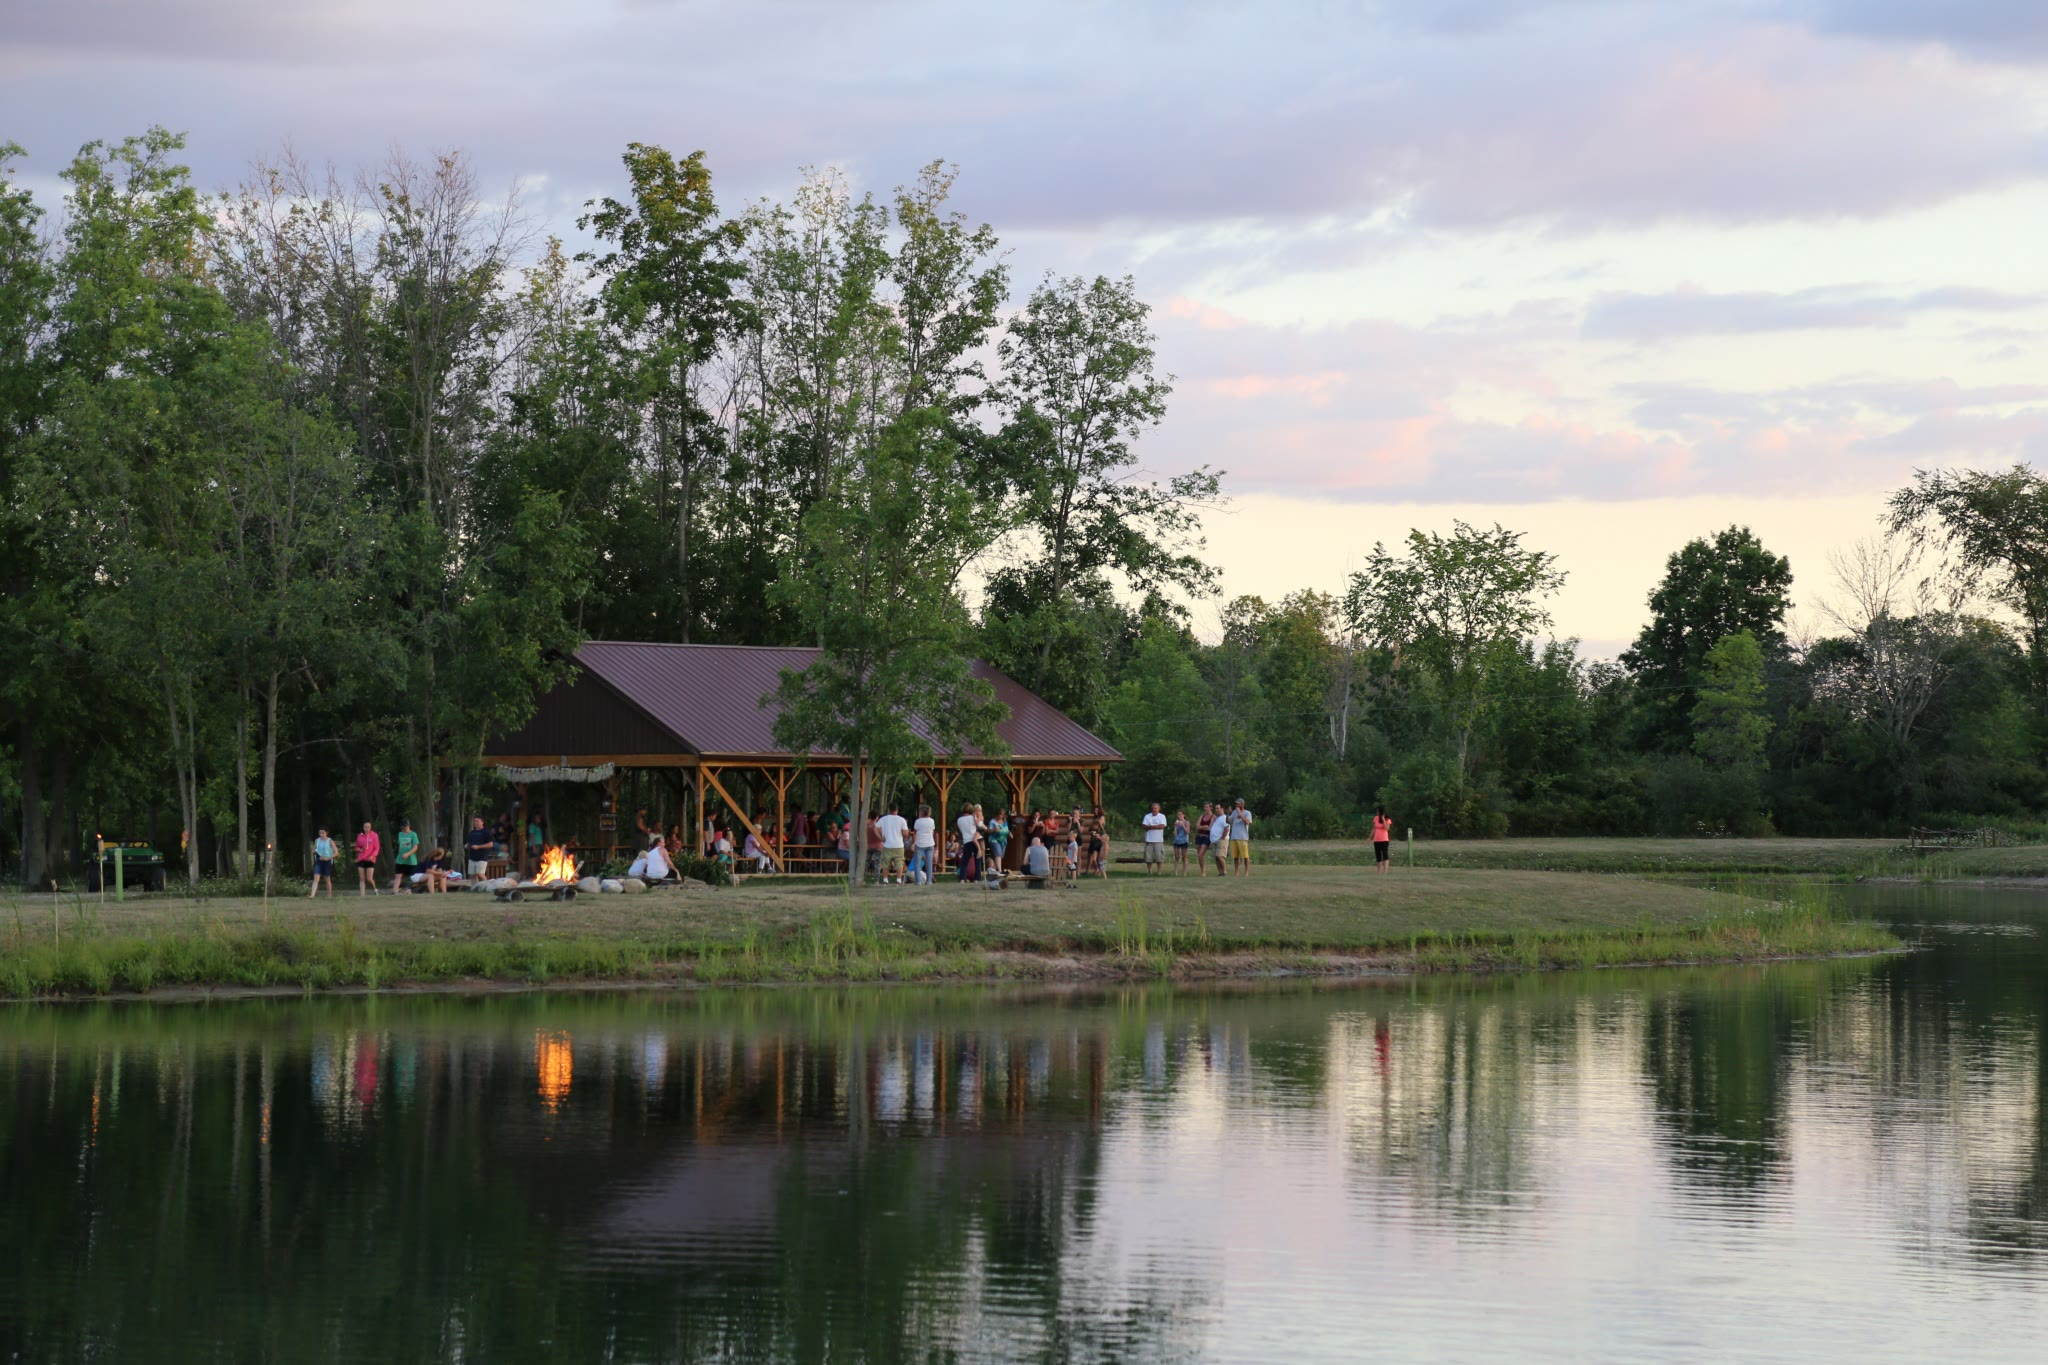 event at a pavilion at Branches of Niagara Campsite